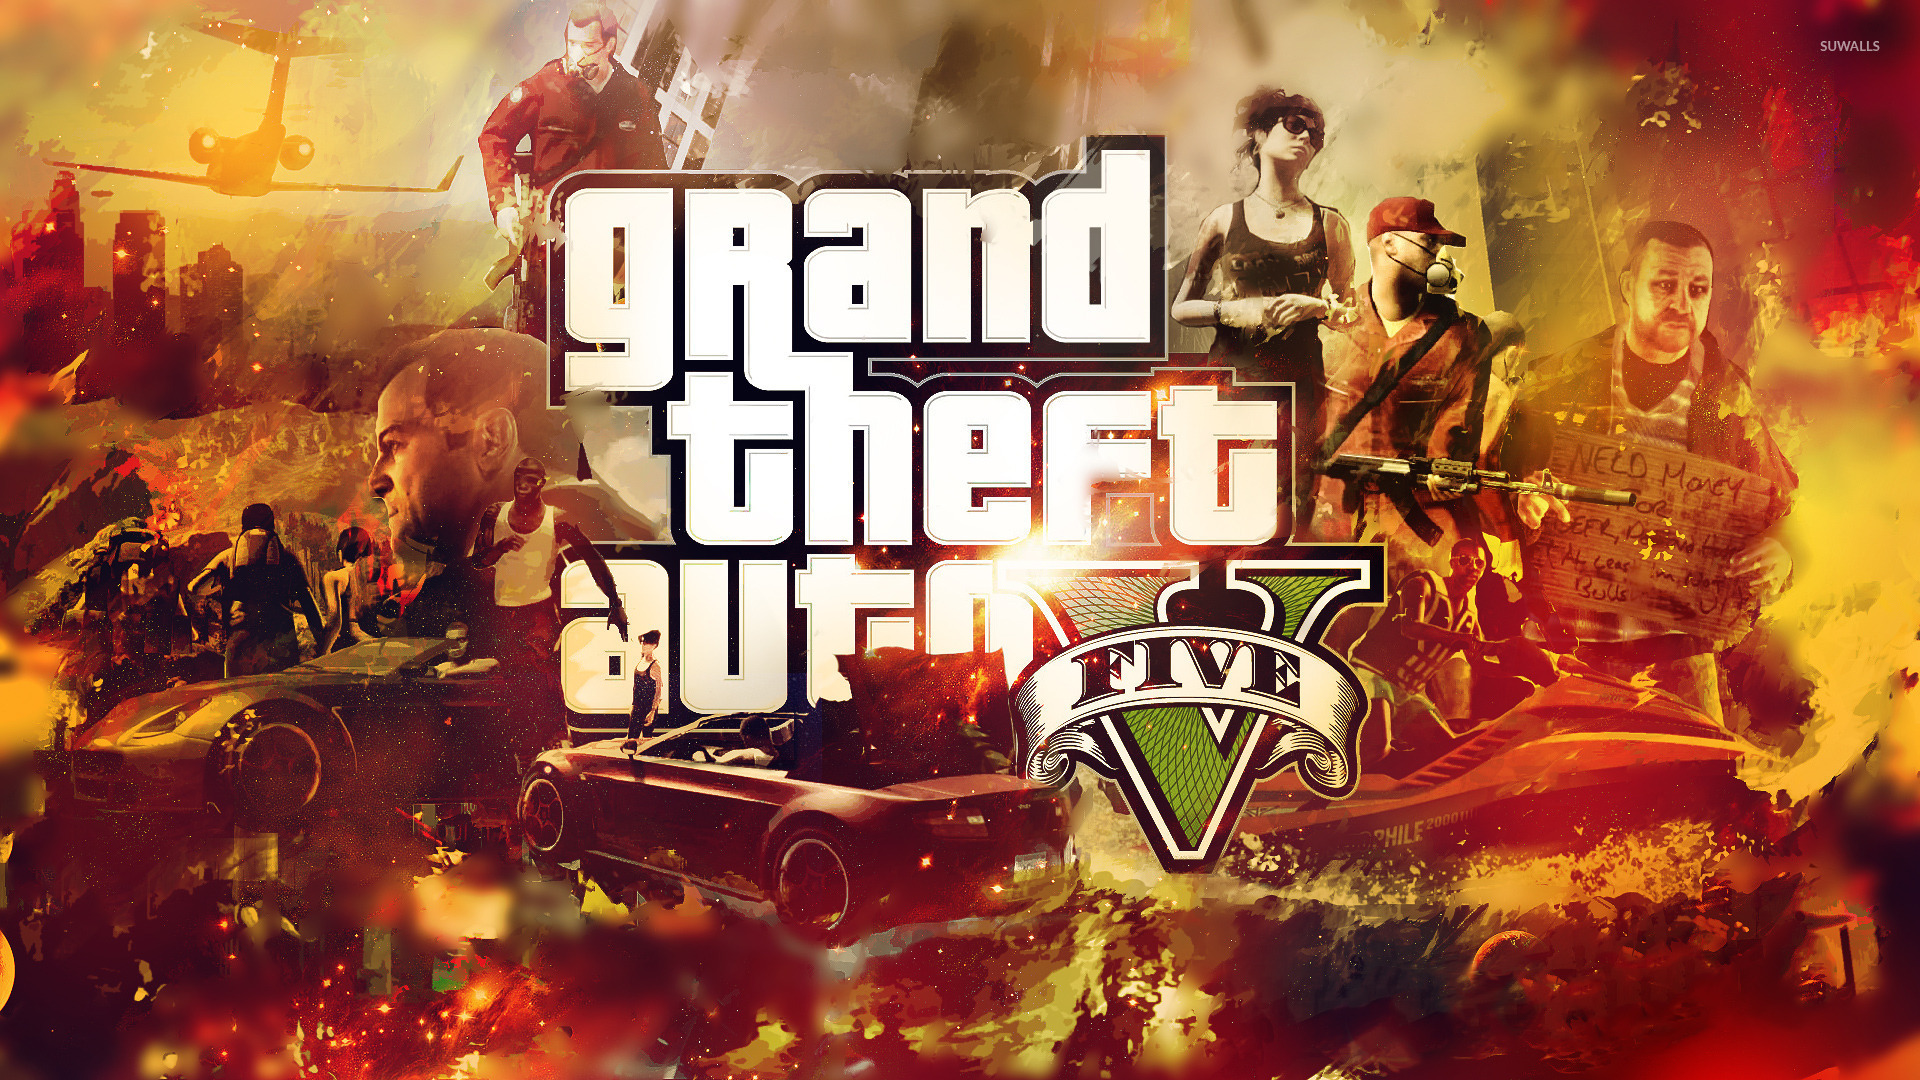 grand theft auto v wallpaper - game wallpapers - #15691